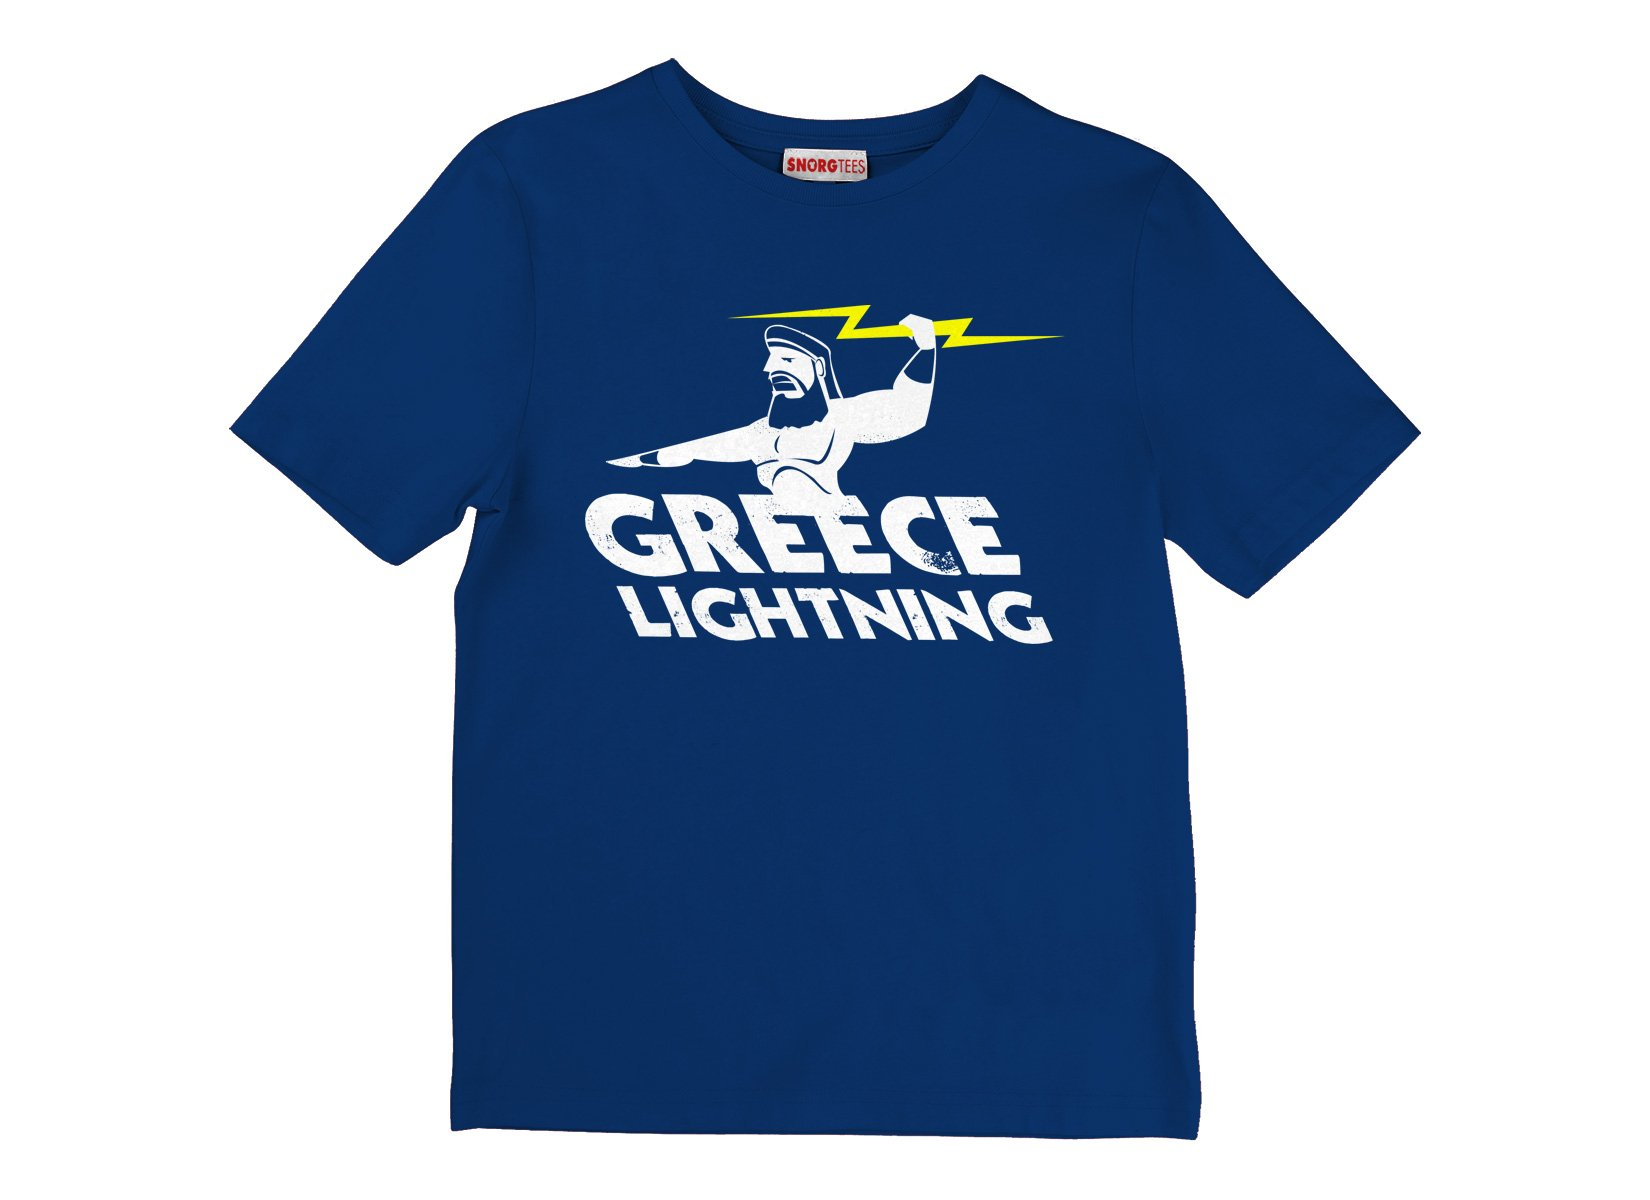 Greece Lightning on Kids T-Shirt